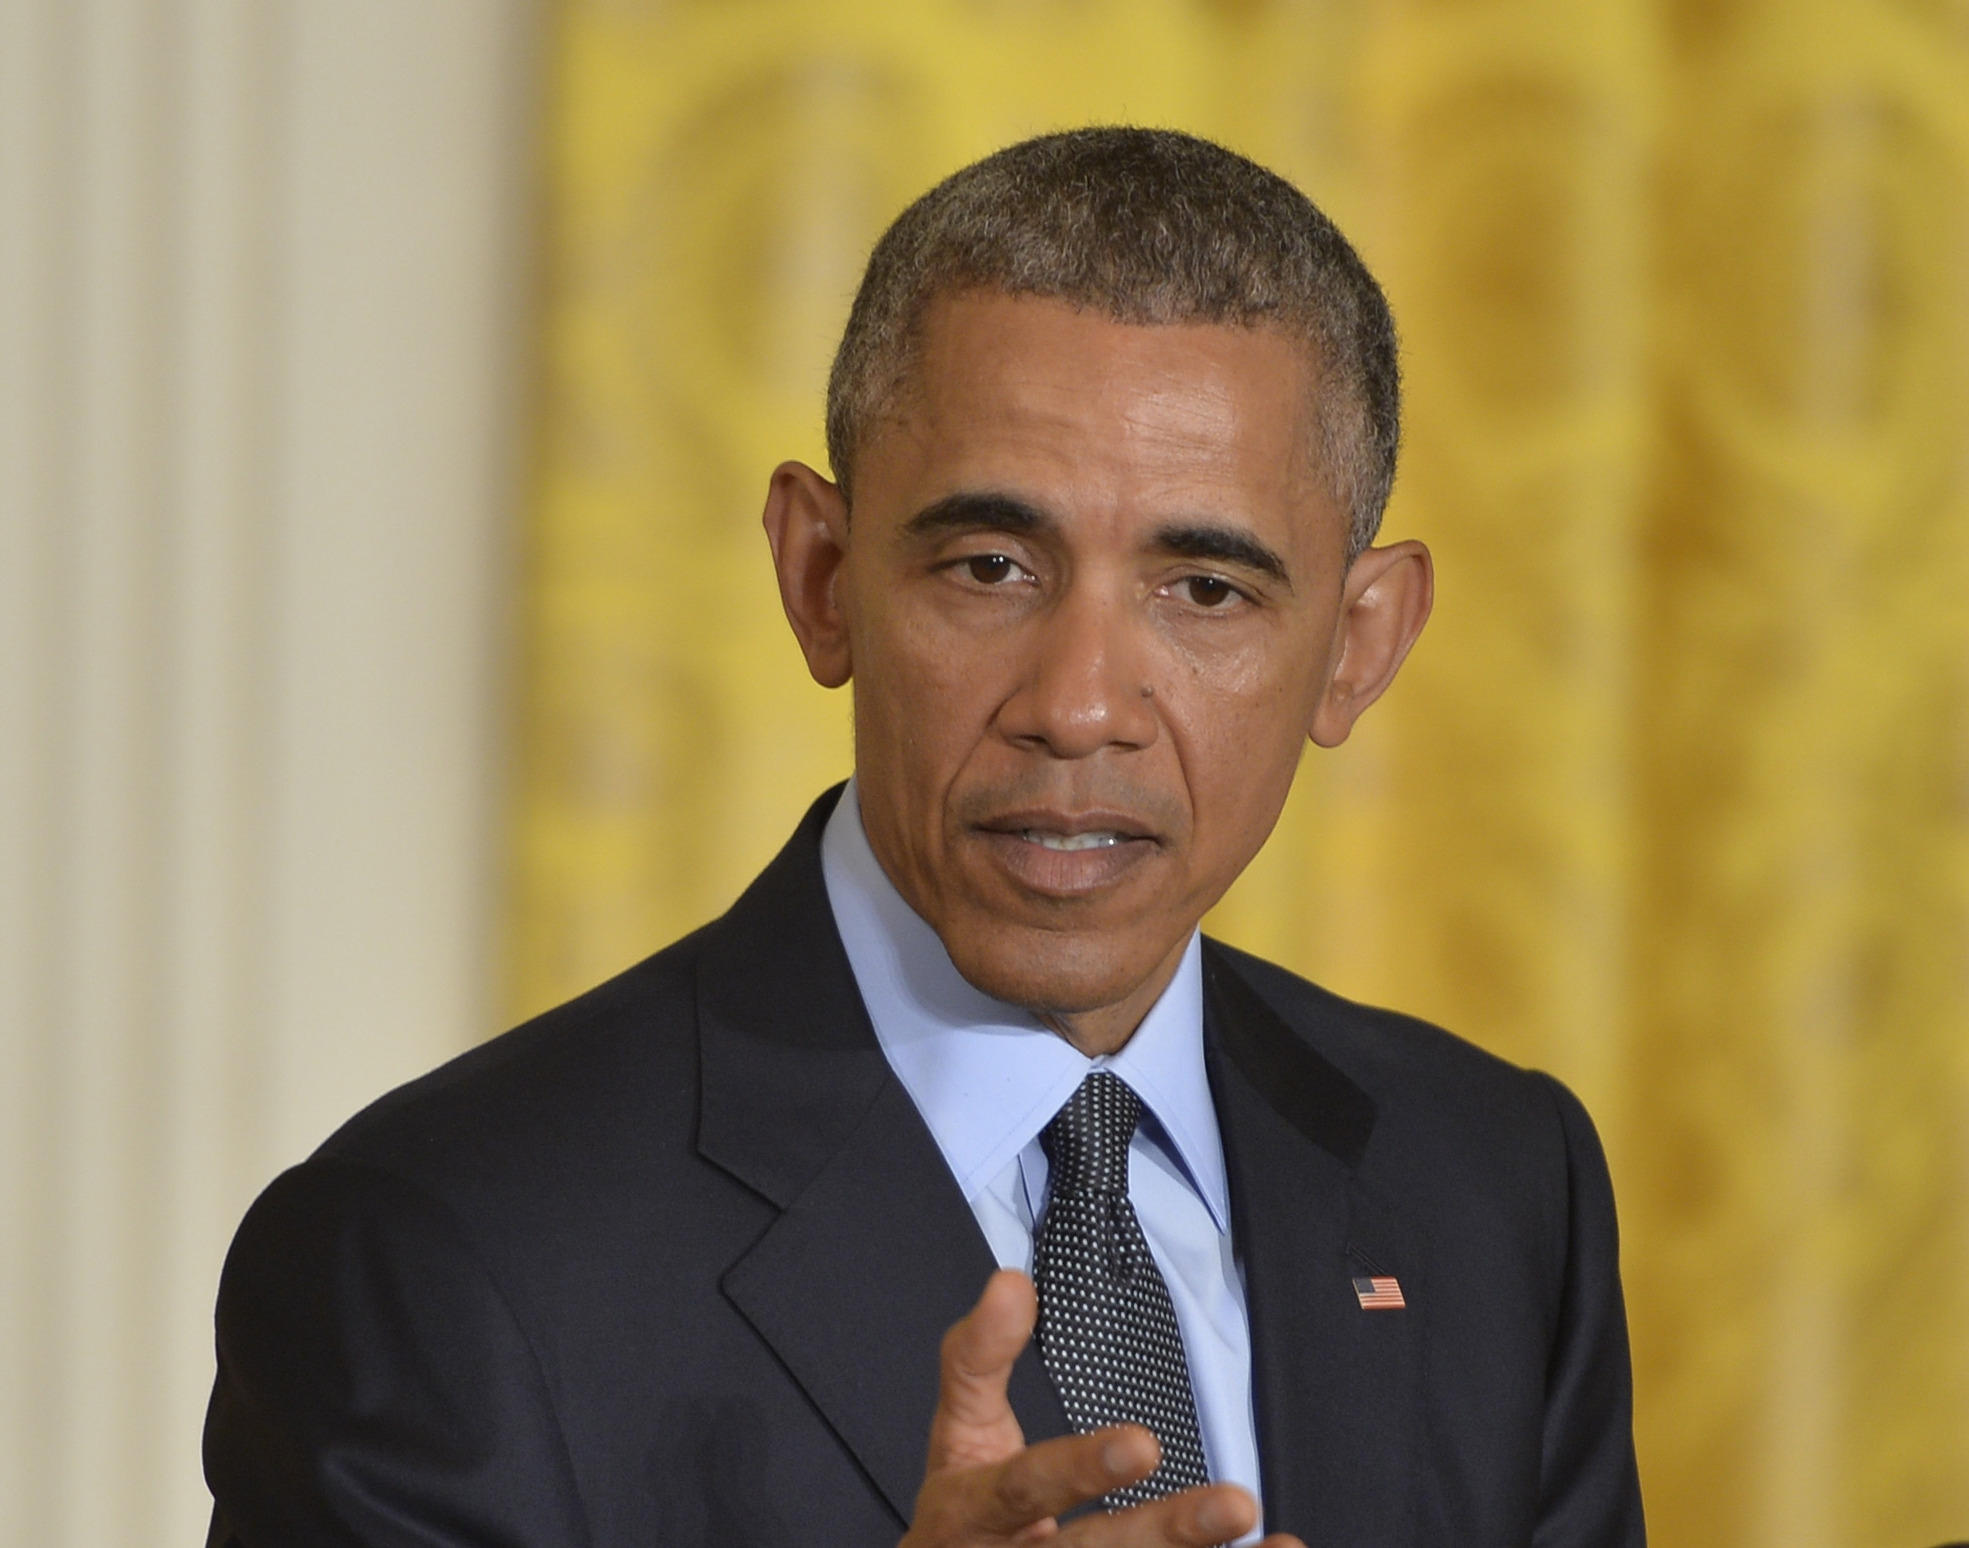 I'm Best Suited As Basketball Commissioner: Obama